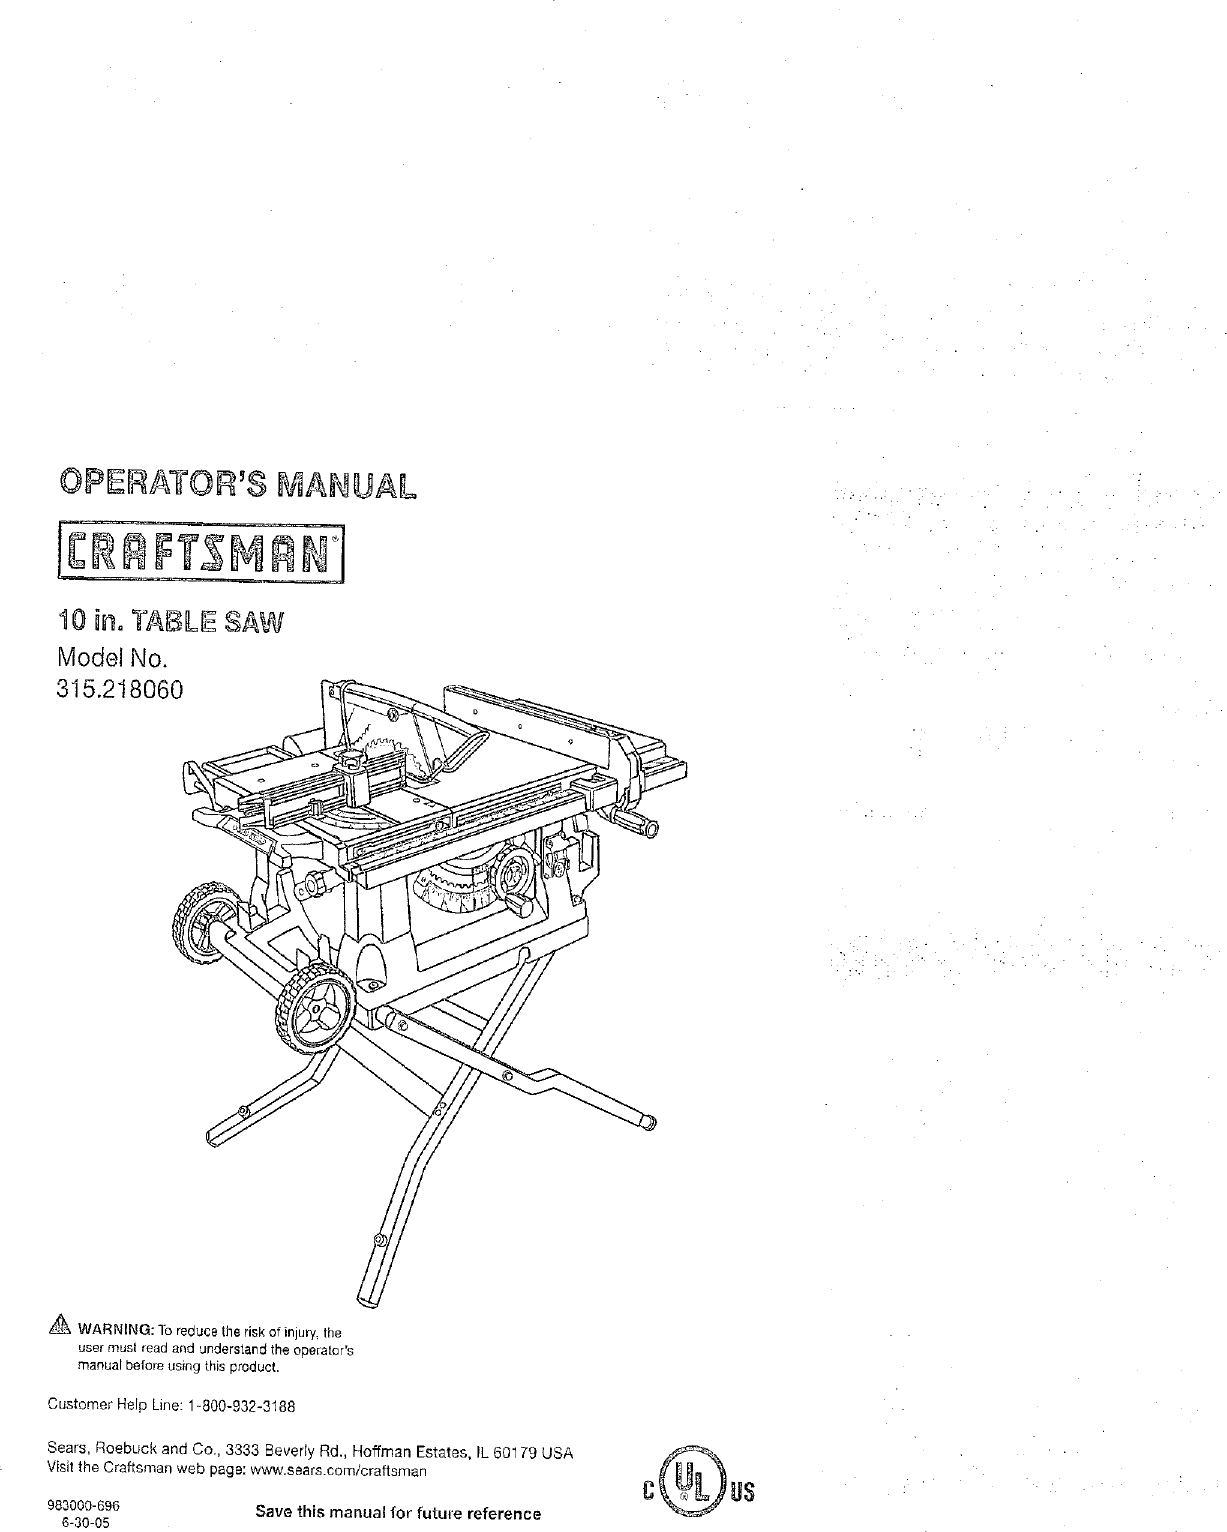 Craftsman 315218060 User Manual TABLE SAW Manuals And